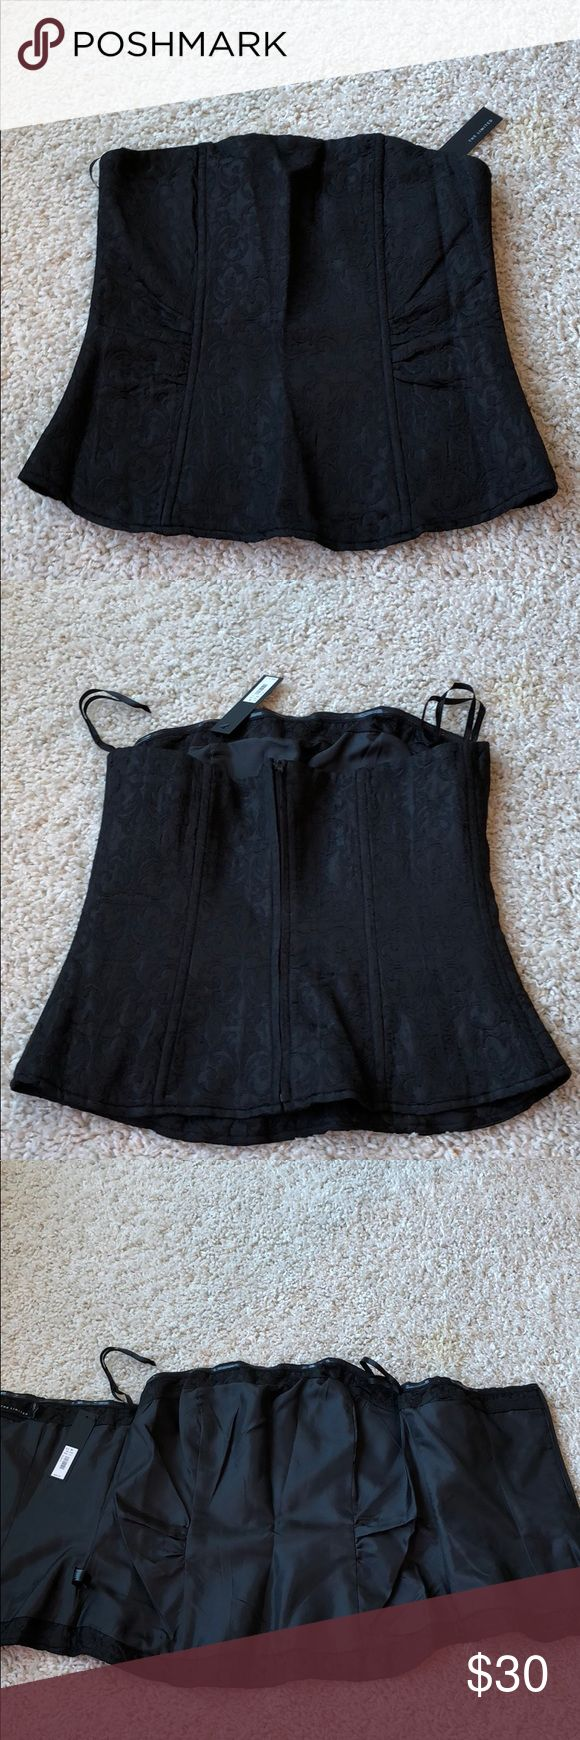 The Limited Black bustier top This BNWT black bustier top is perfect for an evening on the town. It has a zipper up the back and is a size medium. Their is a swirl pattern all over the top. The Limited Tops